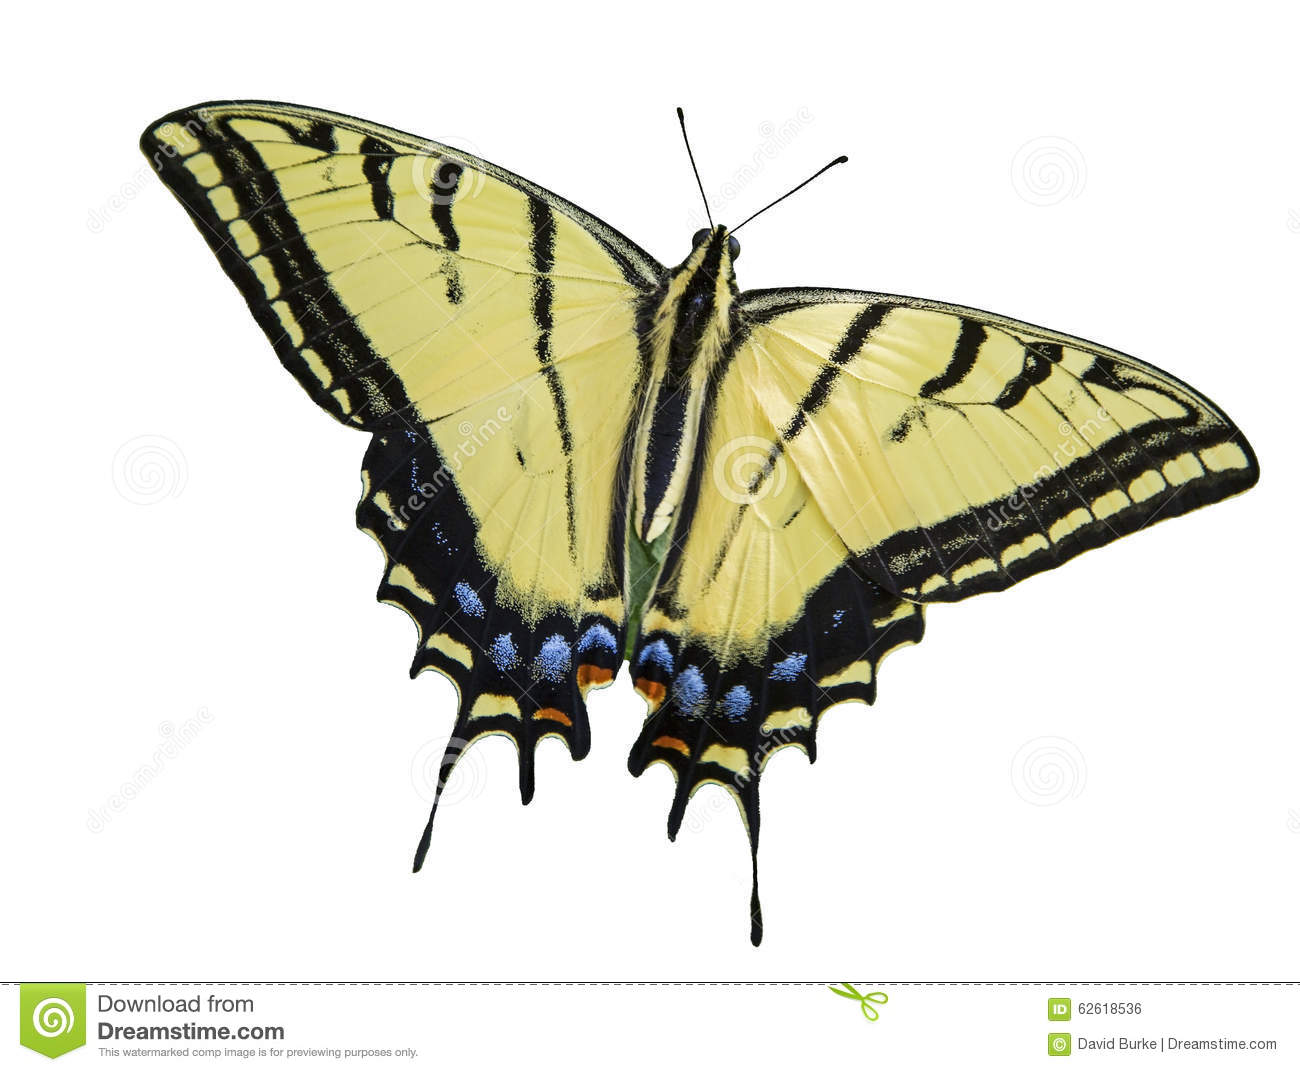 Two tailed swallowtail butterfly isolated white